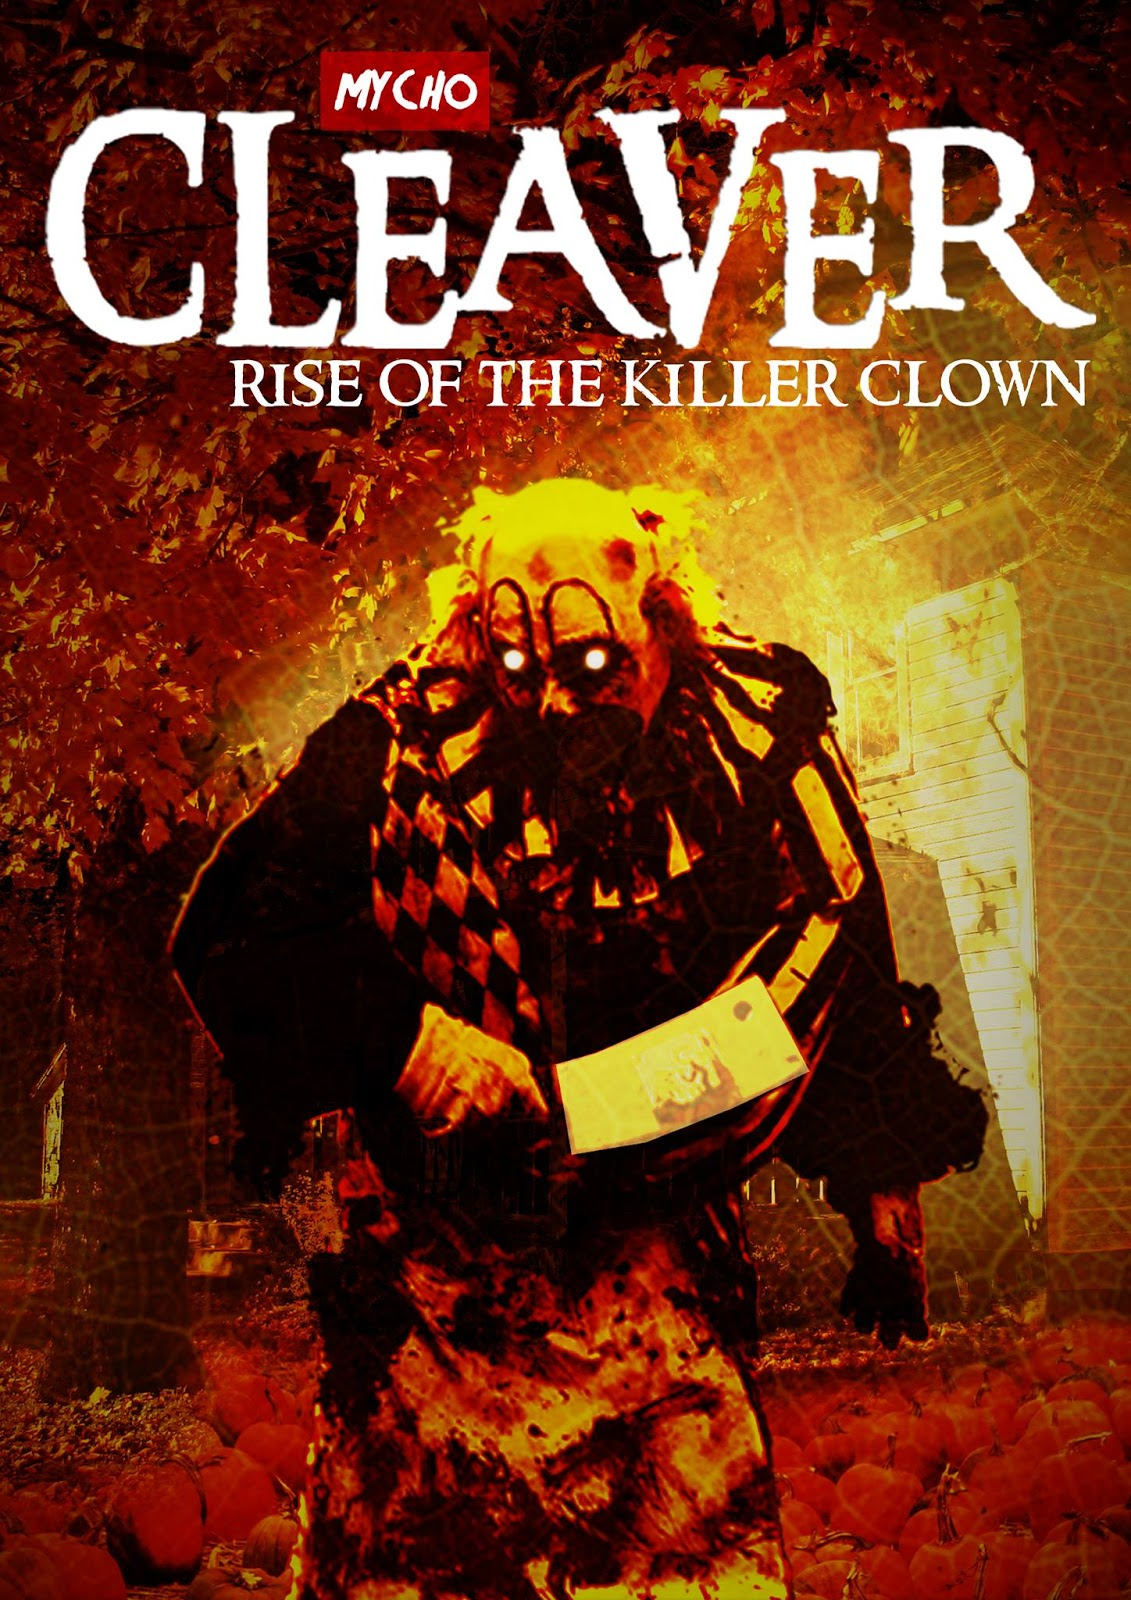 123Filme Online Anschauen Cleaver: Vormarsch der Killer-Clown (2015) Full Movie HD putlocker